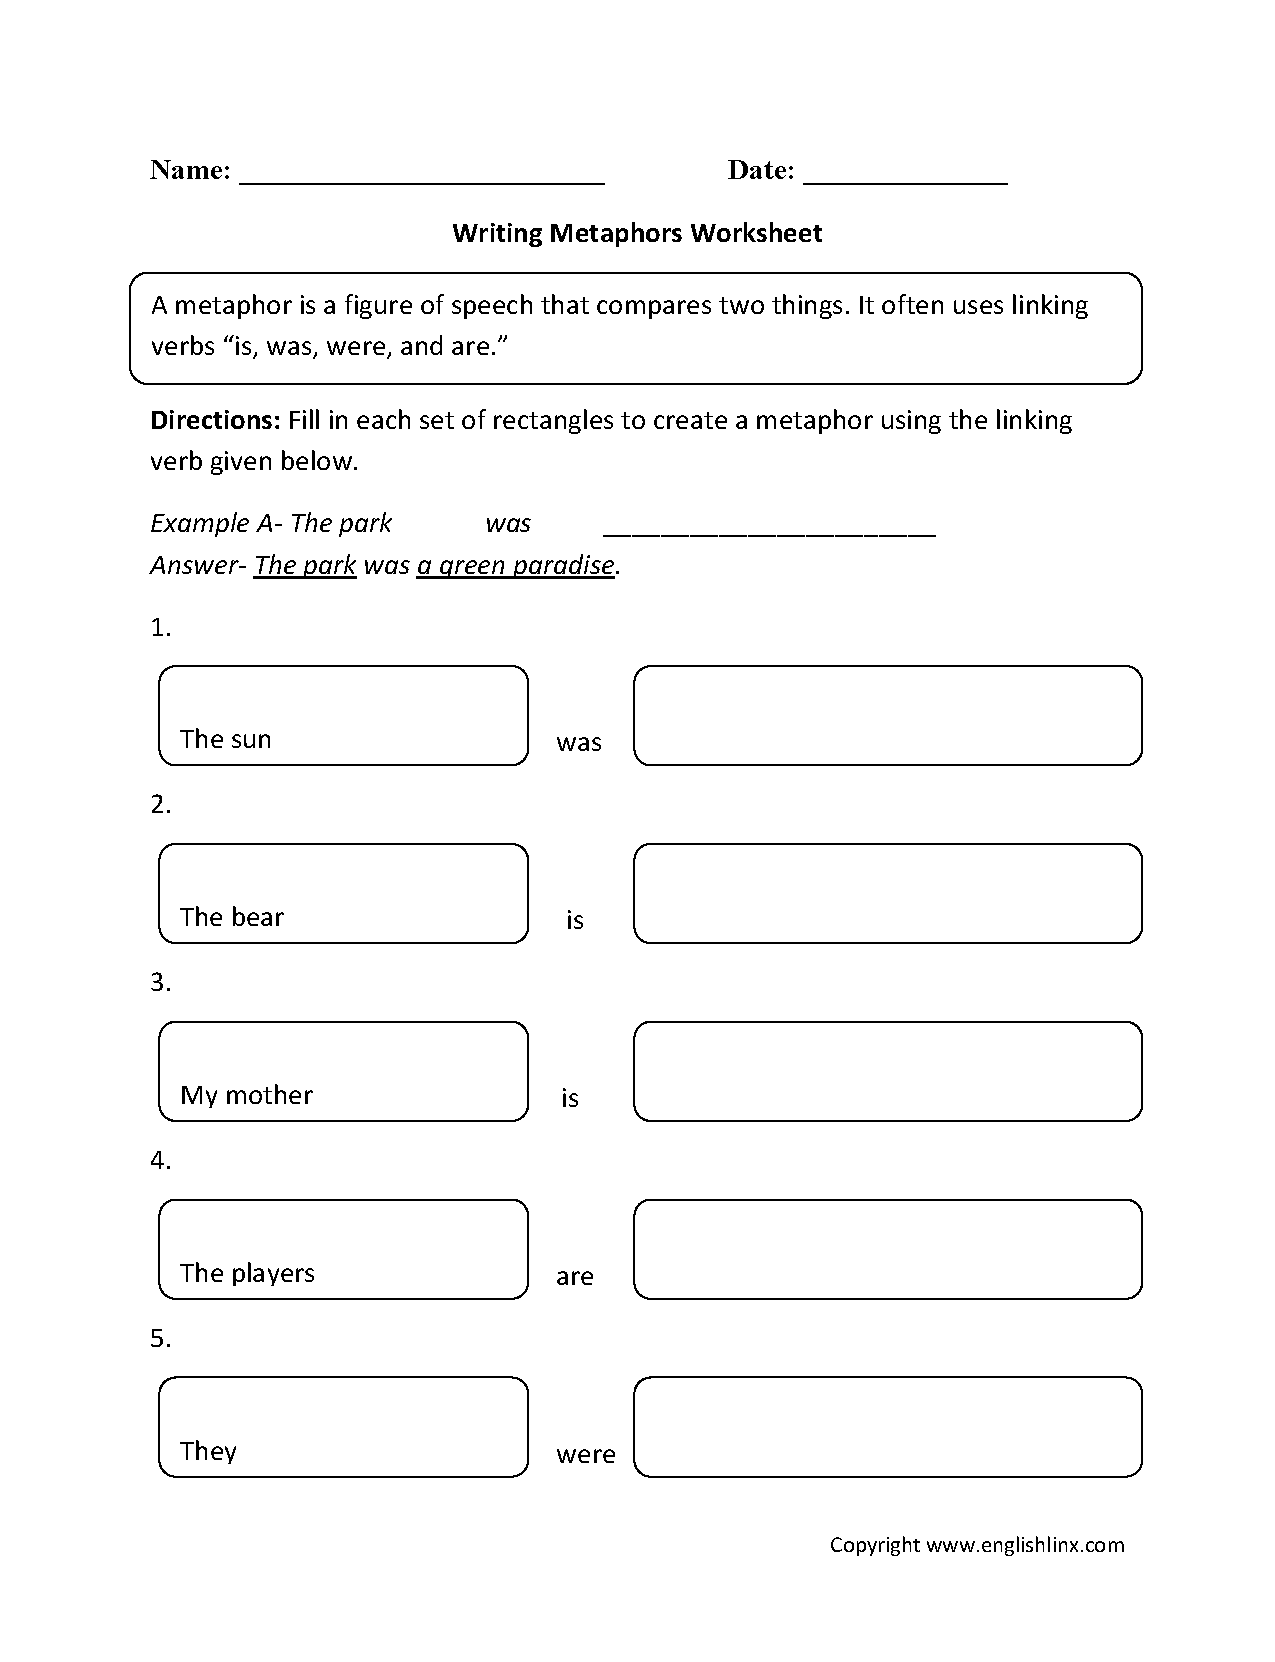 worksheet Metaphors Worksheets englishlinx com metaphors worksheets grades k 5 worksheets